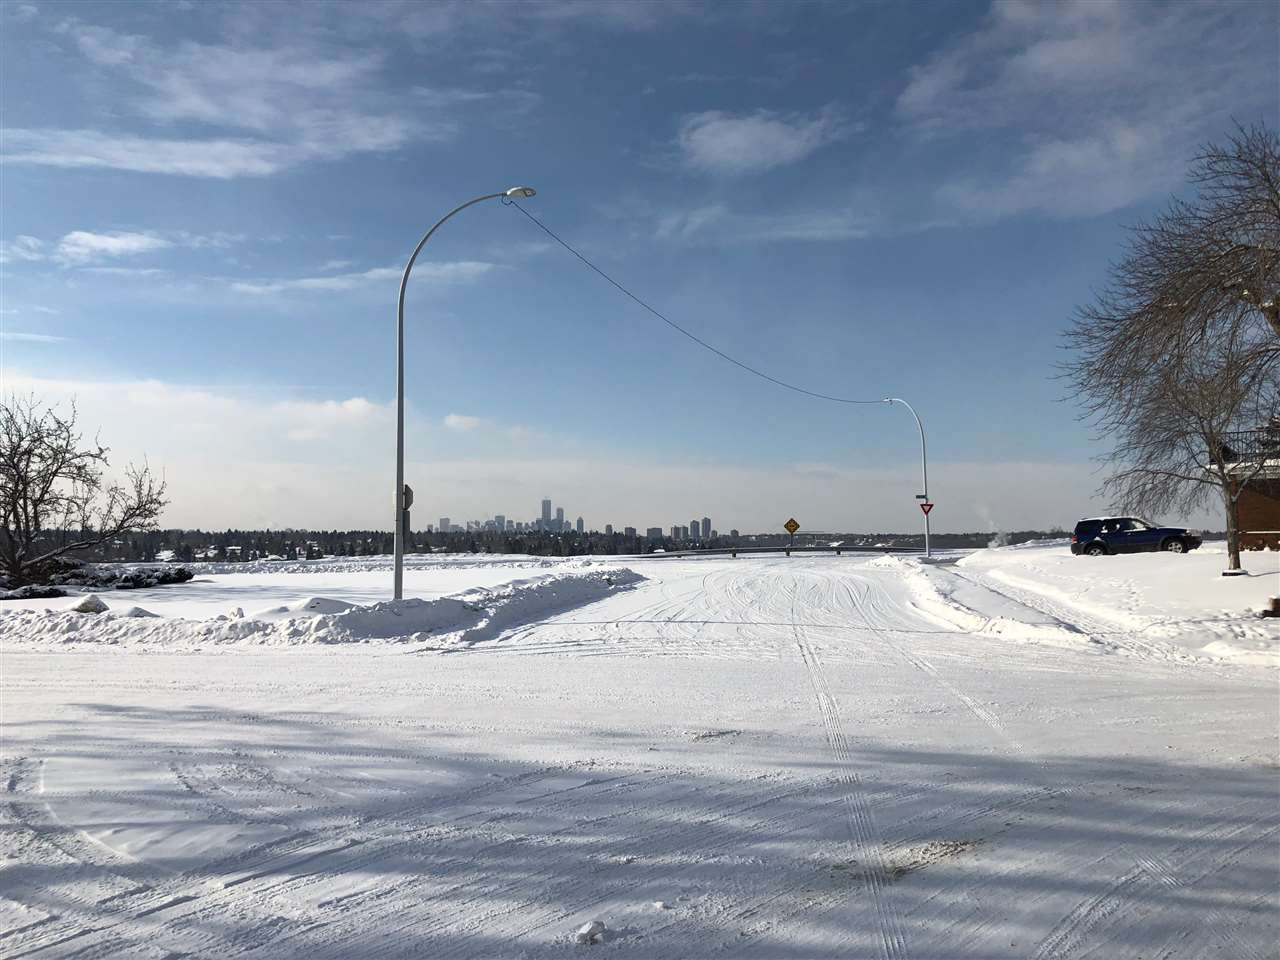 Looking to build your dream home!? Check out this awesome infill lot in Beverly Heights next to ADA BOULEVARD! You will not find a lot for this price with views of the river valley and downtown! Short walk to trails accessing Rundle Park on the North bank of the river. Enjoy a wide range of facilities and features such as sports fields, picnic sites, toboggan hills and an IceWay in the winter months. 25ft x 120ft RF1 lot with amazing view points from a potential future ROOFTOP PATIO! Purchase the lot as is or have us complete the build for you. Previous models and show home available for viewing. GST will be charged and is INCLUDED in the list price. 3649 106 AV and 3645 106 AV are also listed for sale and are both 25 ft x 120 ft in size as well.